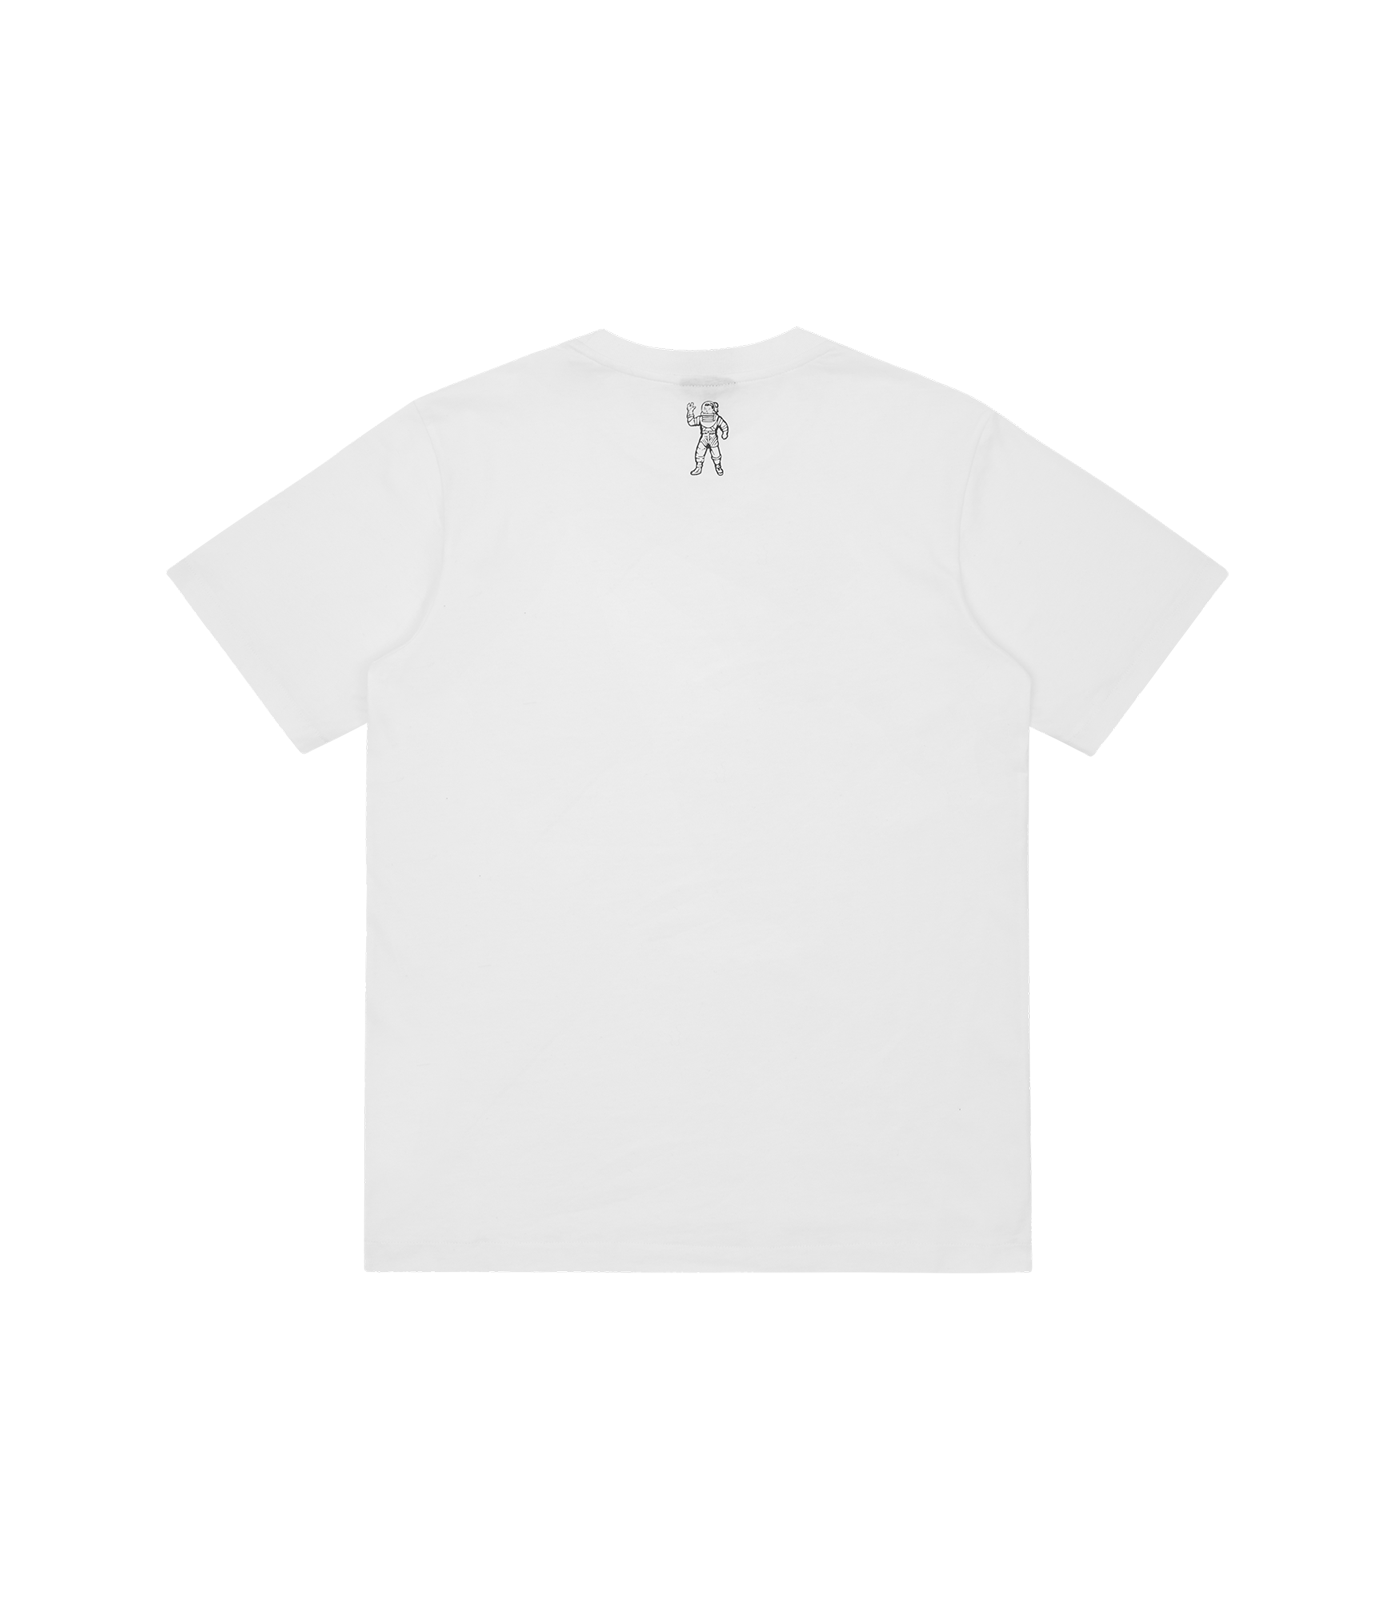 HEART & MIND GRAPHIC T-SHIRT - WHITE